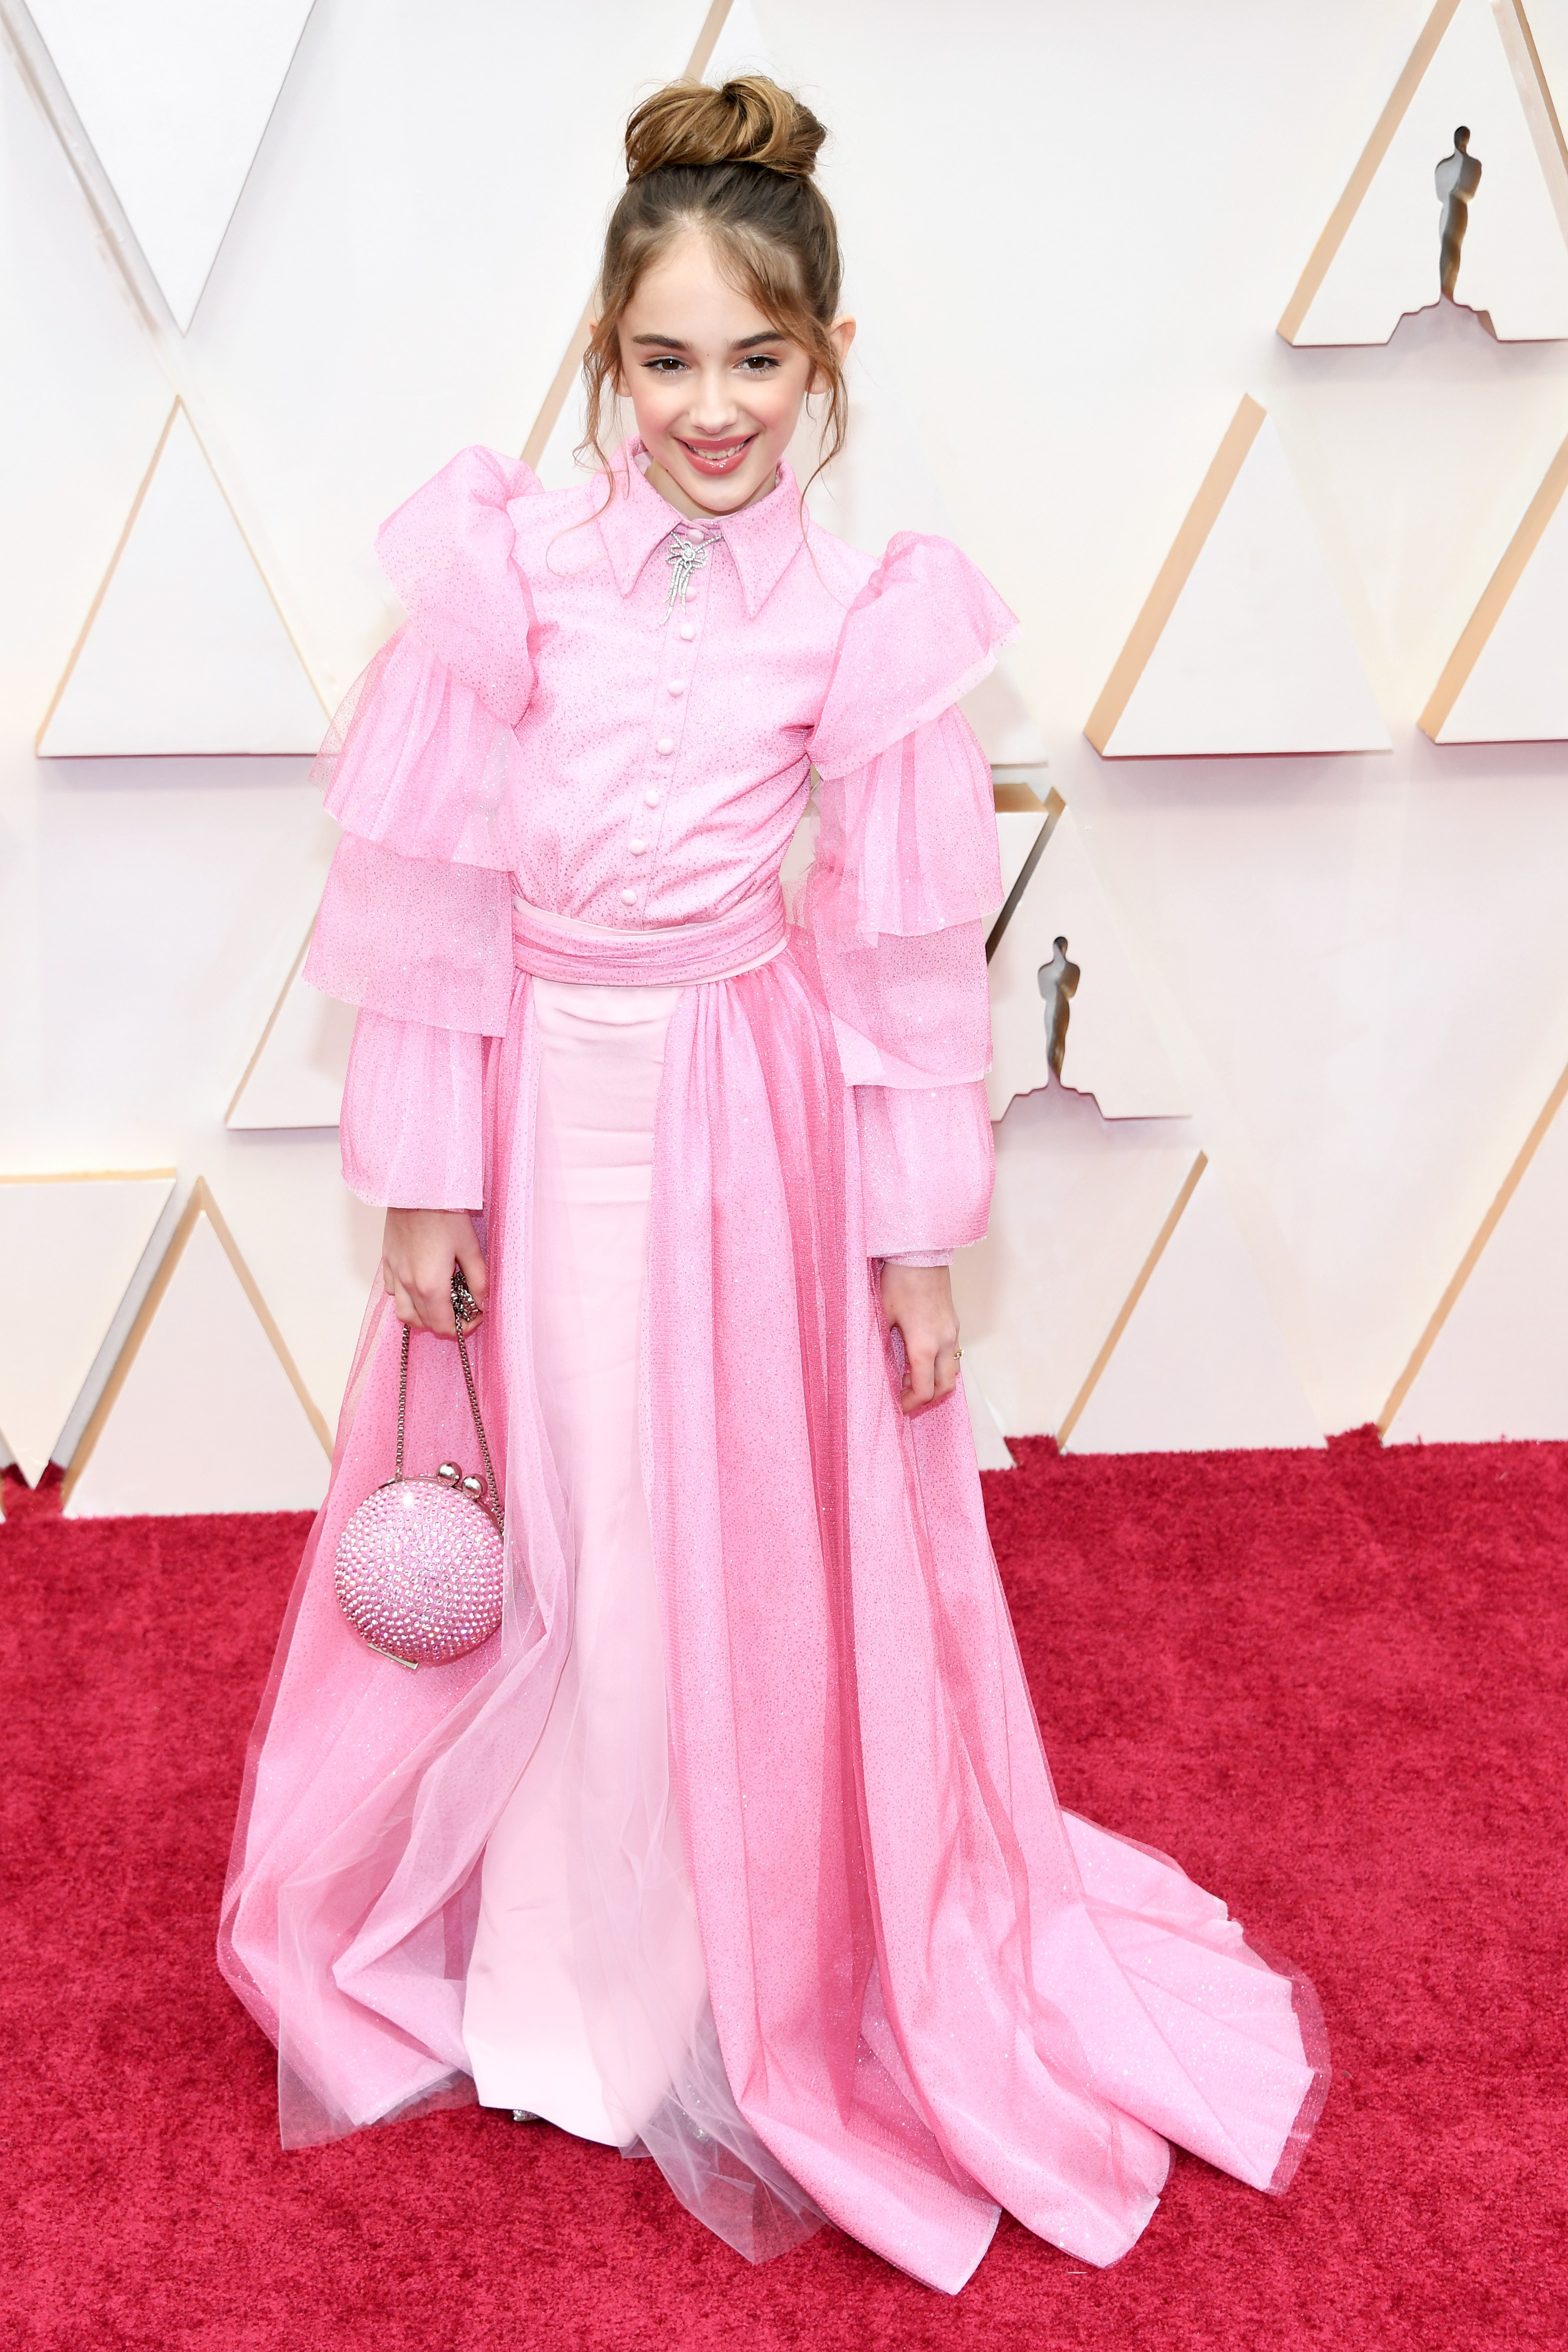 Julia Butters chega ao Oscar (Foto: Getty Images)